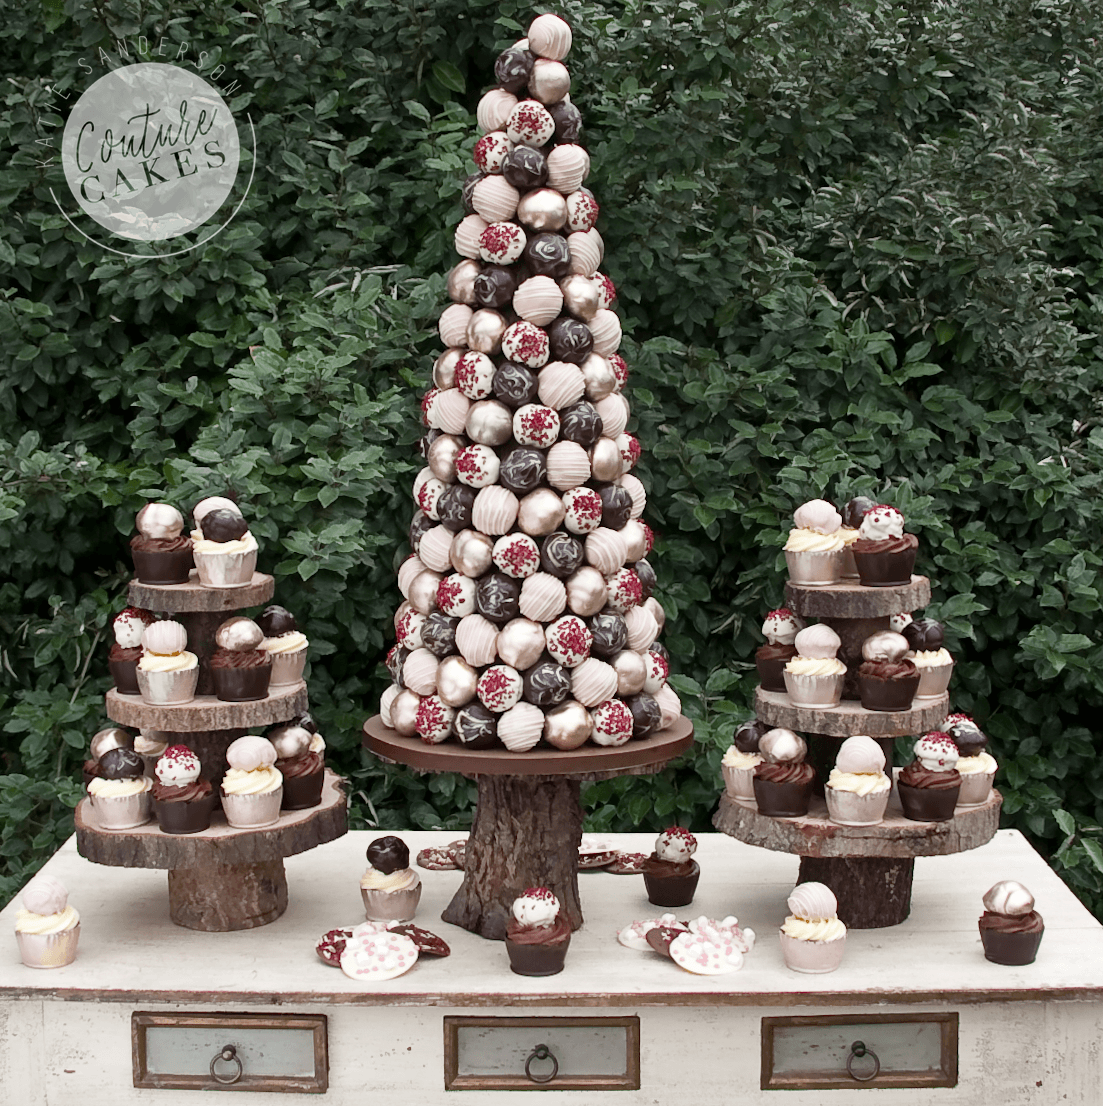 Croquembouche provides 200 profiteroles, plus £4.50 each for 40 cup cakes